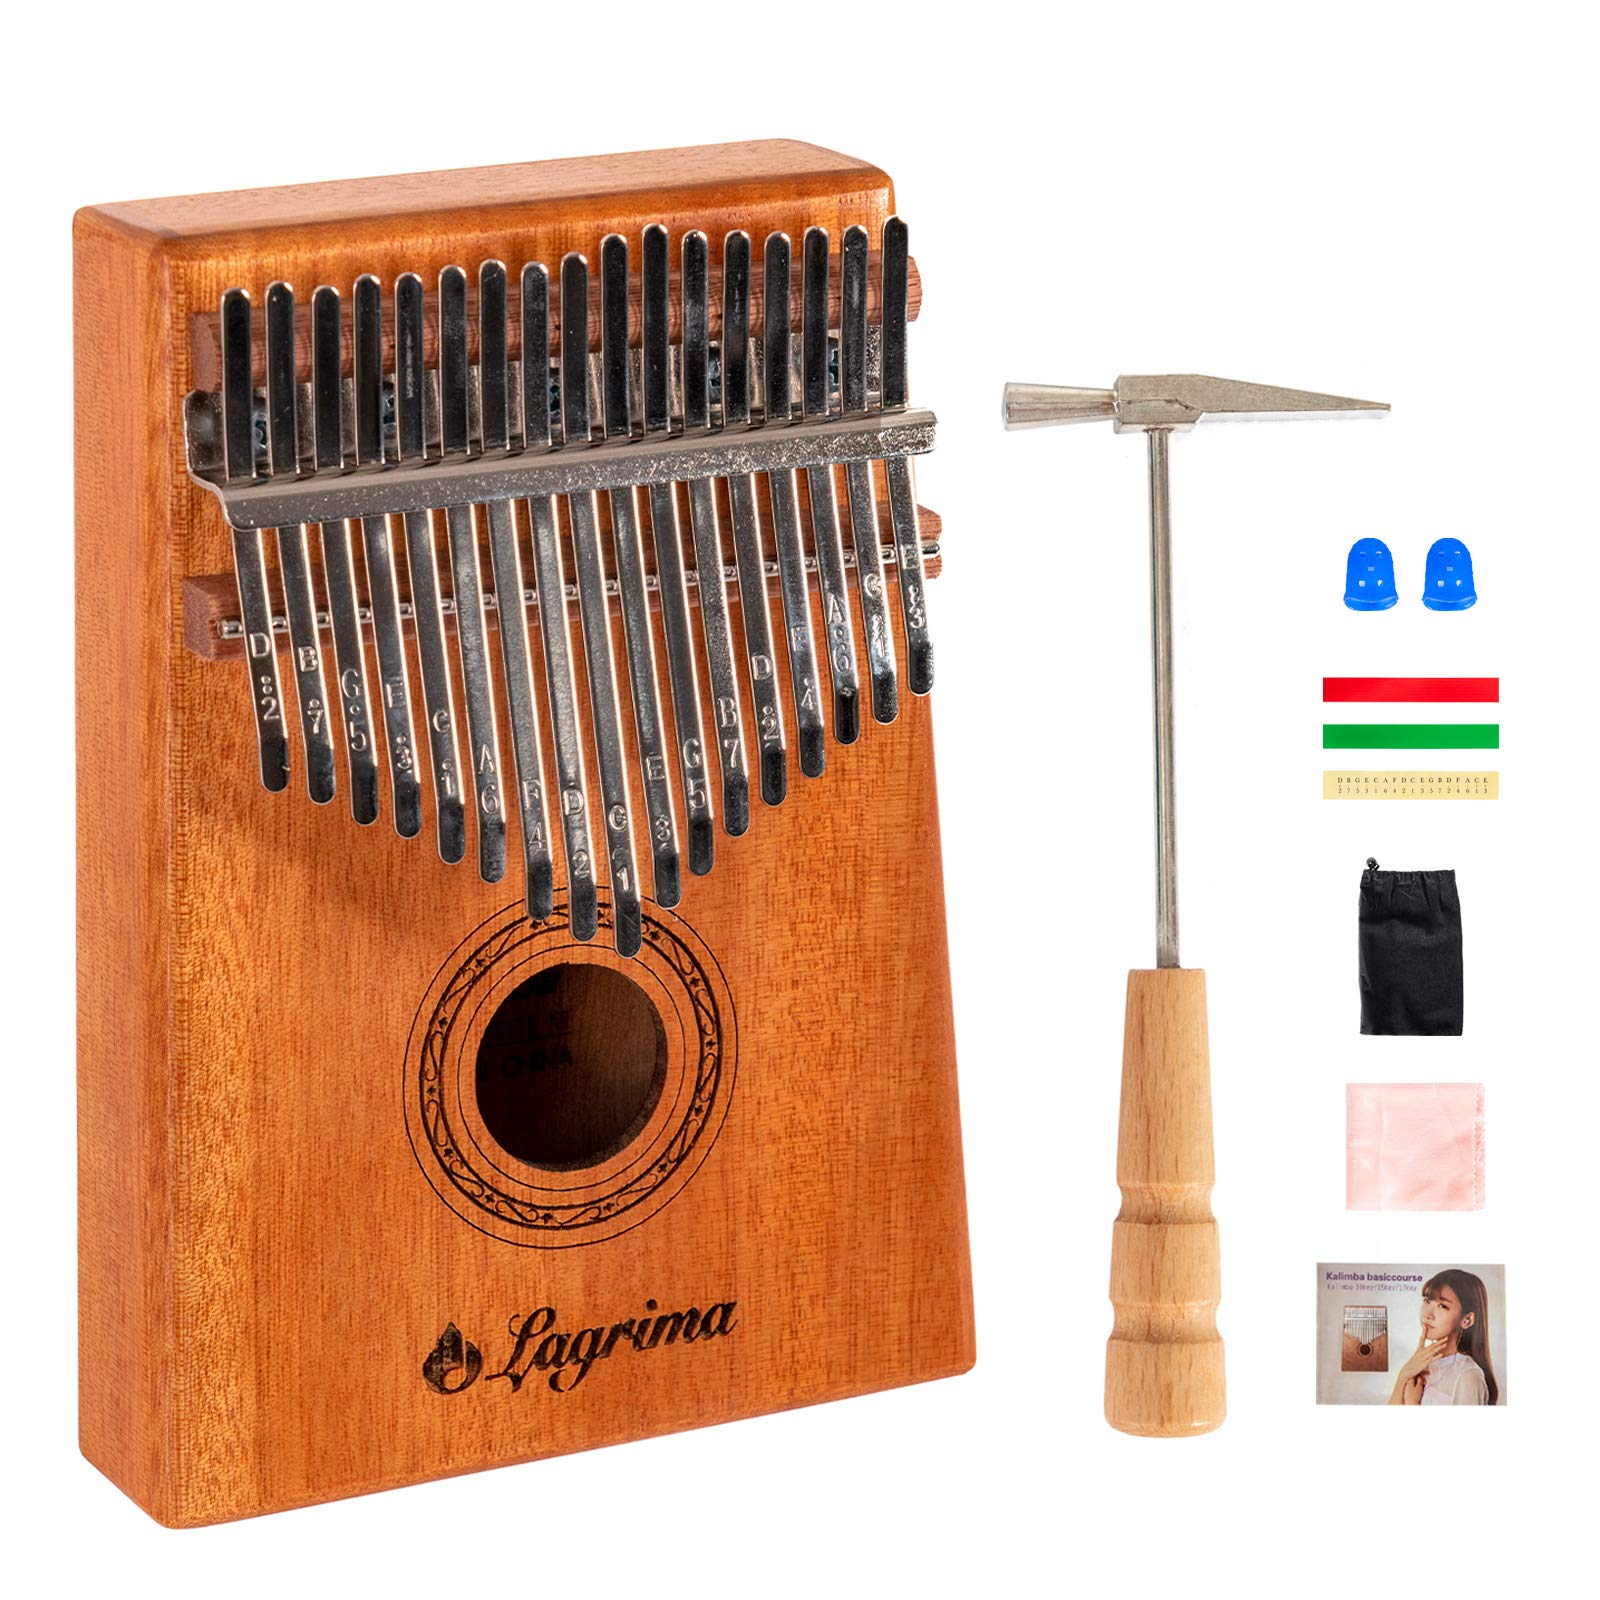 LAGRIMA Kalimba 17 Keys Thumb Piano with Thumb Piano Bag, Tune kit Hammer,Study Instruction and Song Book,Portable Mbira Finger Piano Gifts for Kids and Adults Beginners (Natural)